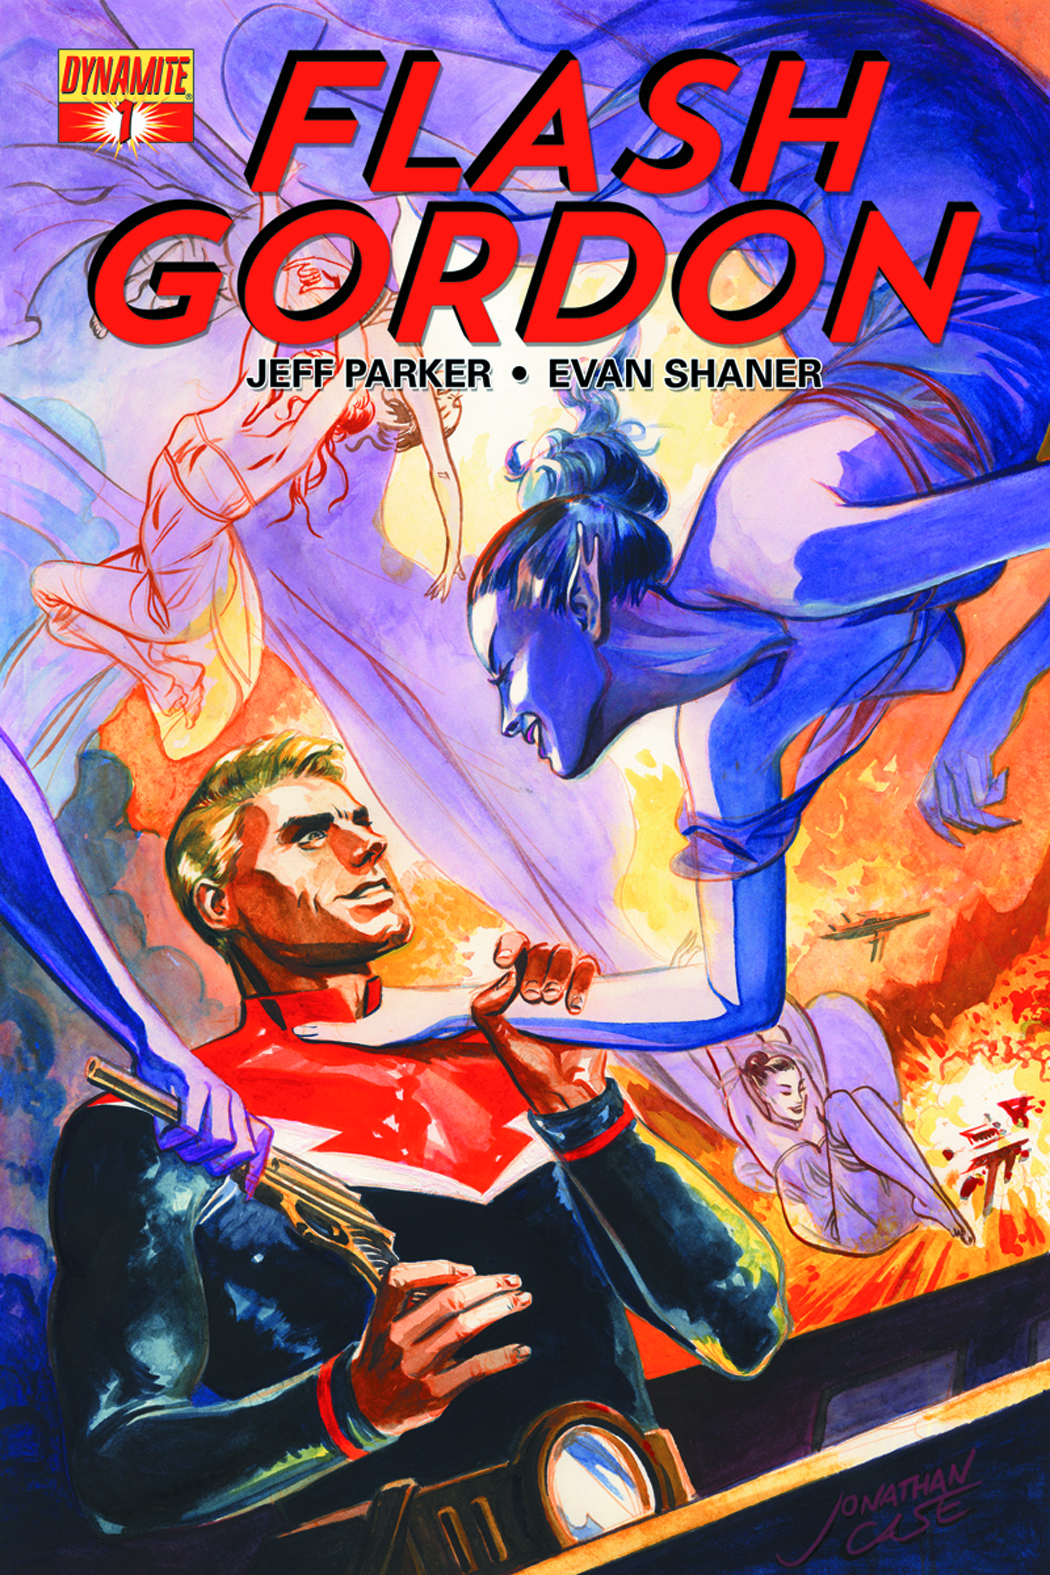 FLASH GORDON #1 CVR B CASE